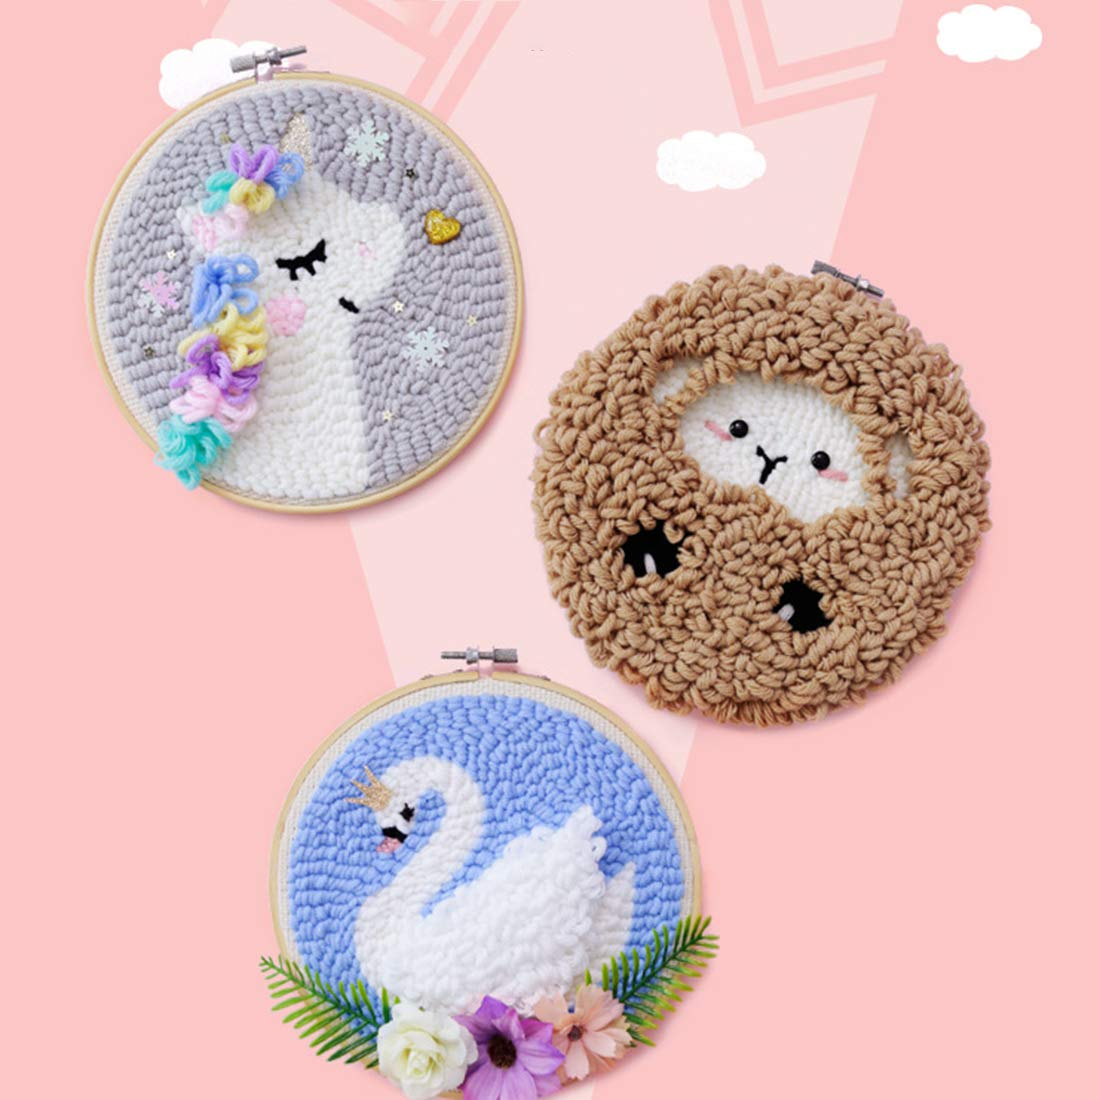 Embroidery Frame Creative Gift with 20 x 20cm Embroidery Frame Punch Needle Lamb HMANE DIY Rug Hooking Kit Handcraft Woolen Embroidery Knitting with Punch Needle